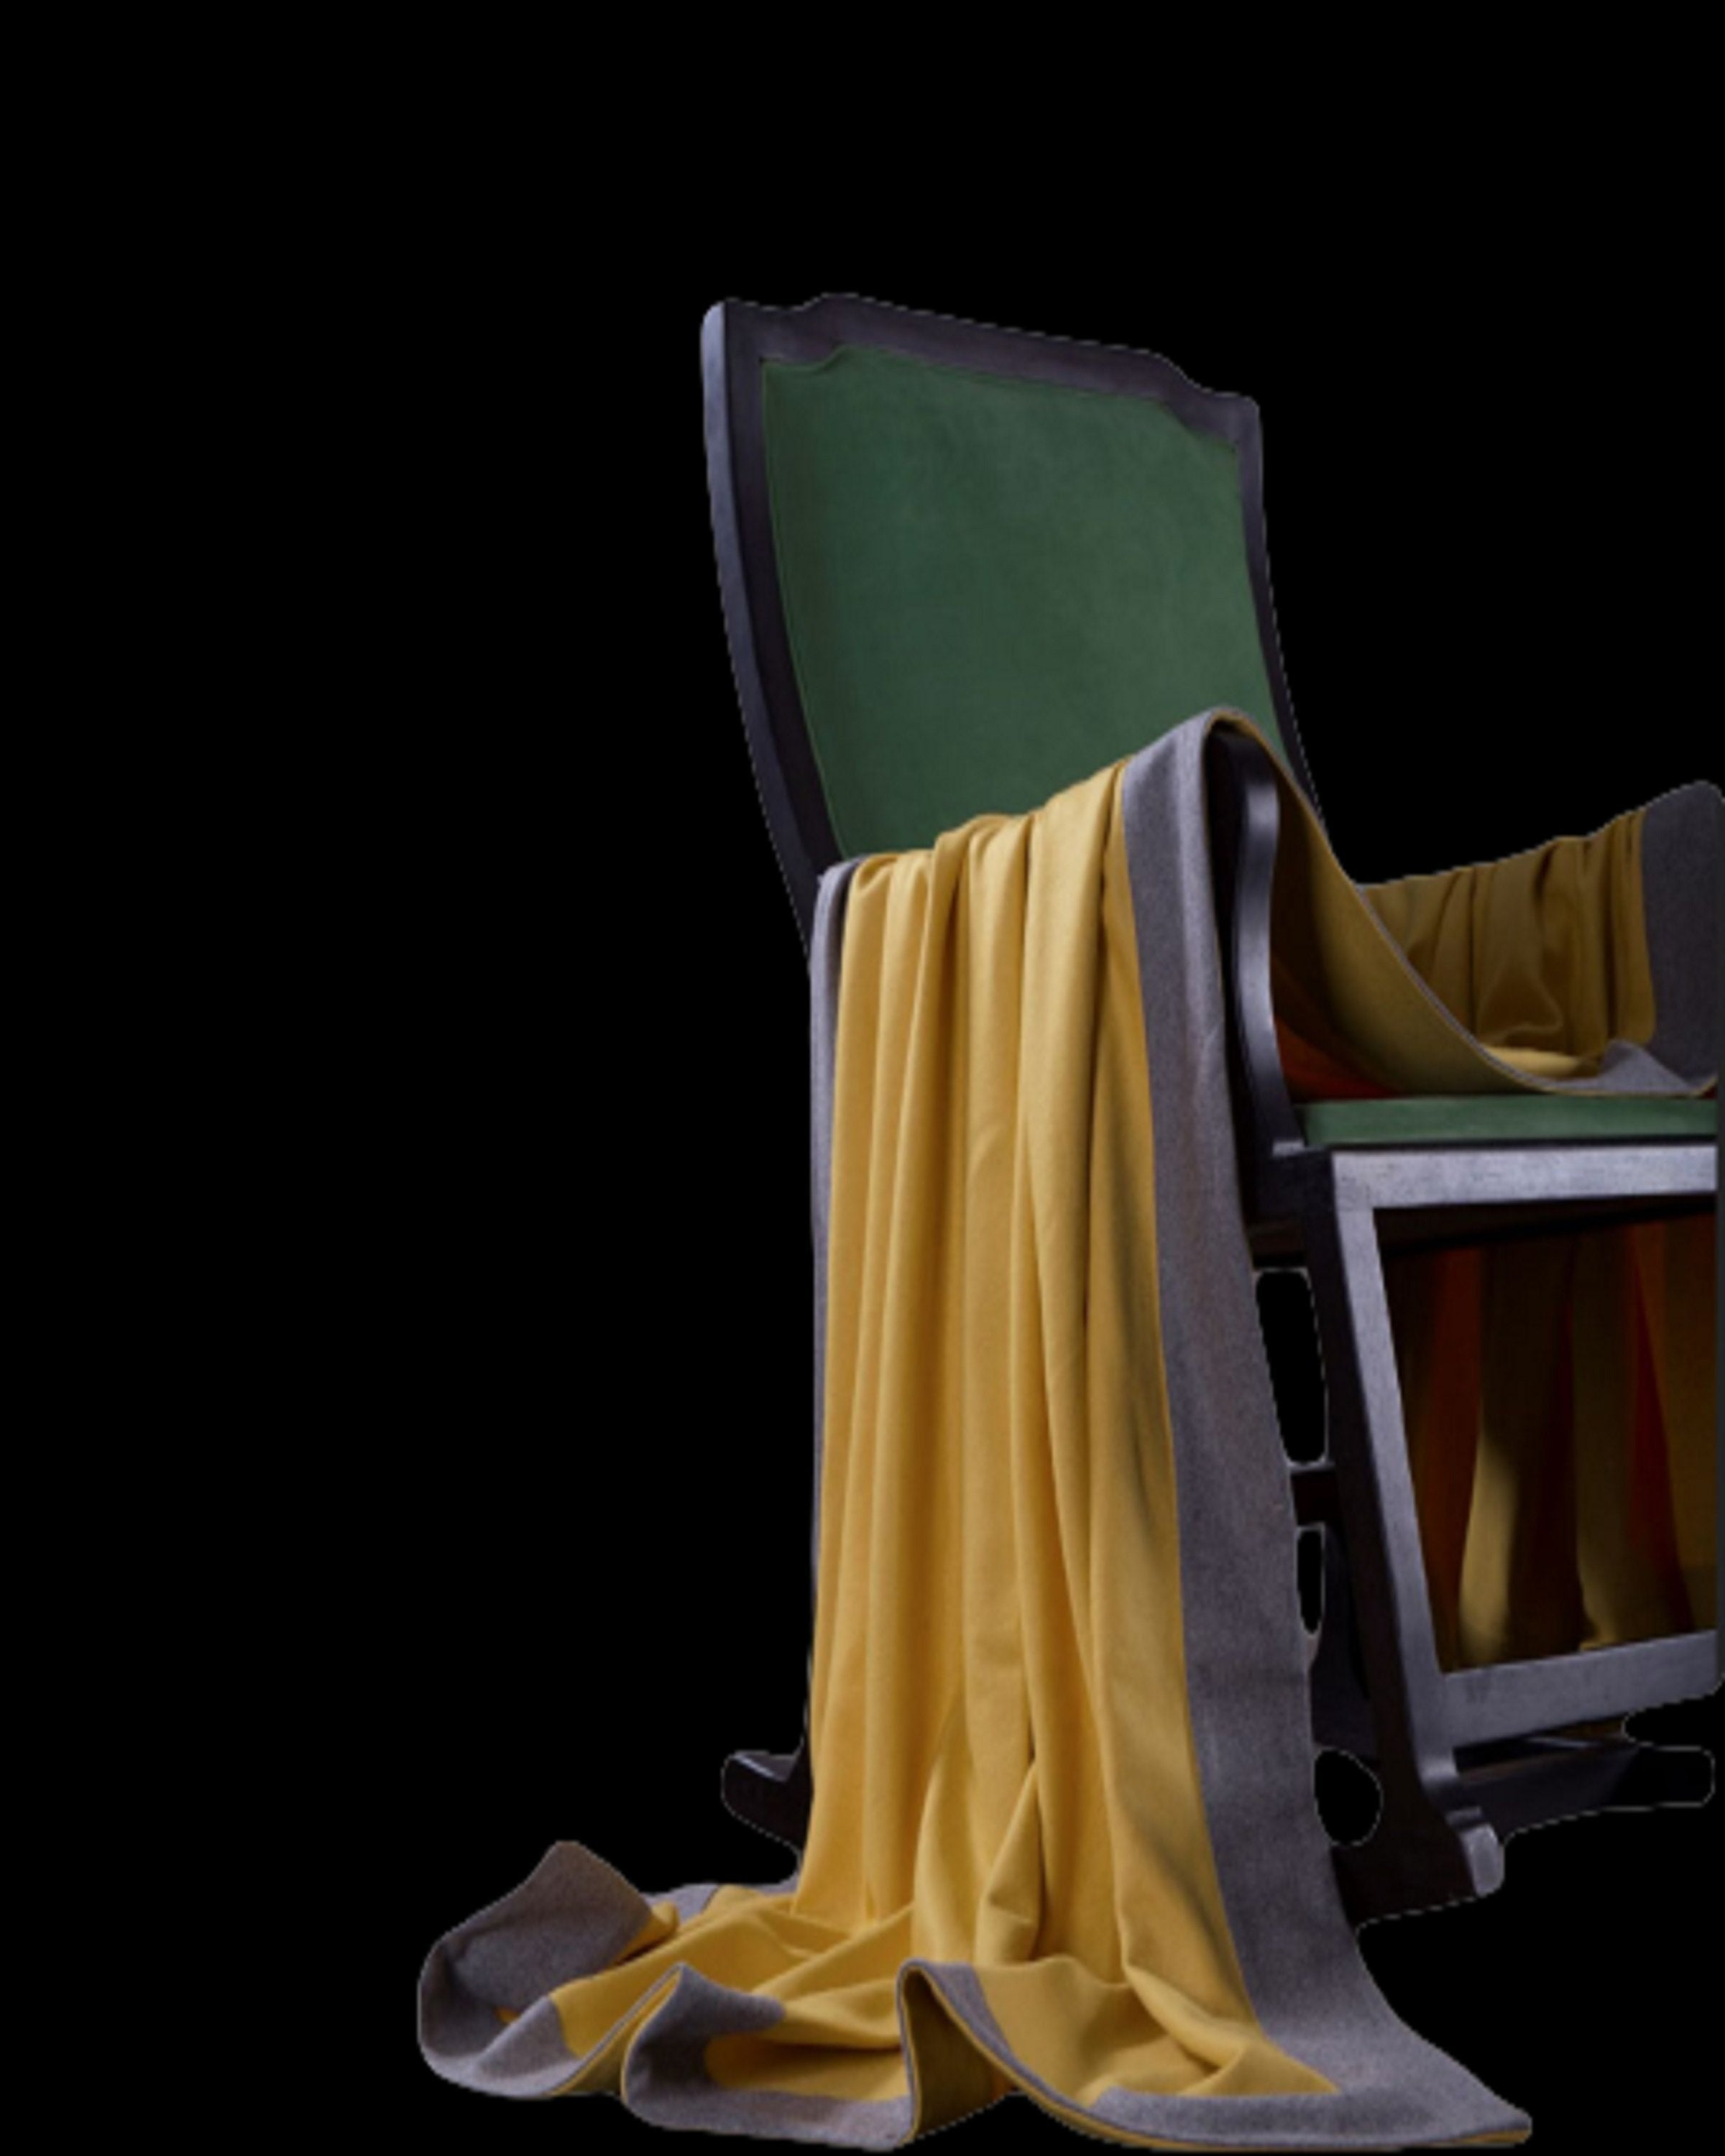 ABBY Yellow Luxury Wool & Knit Cashmere Throws and  Blankets-ANGIE HOMES angie kriplani design